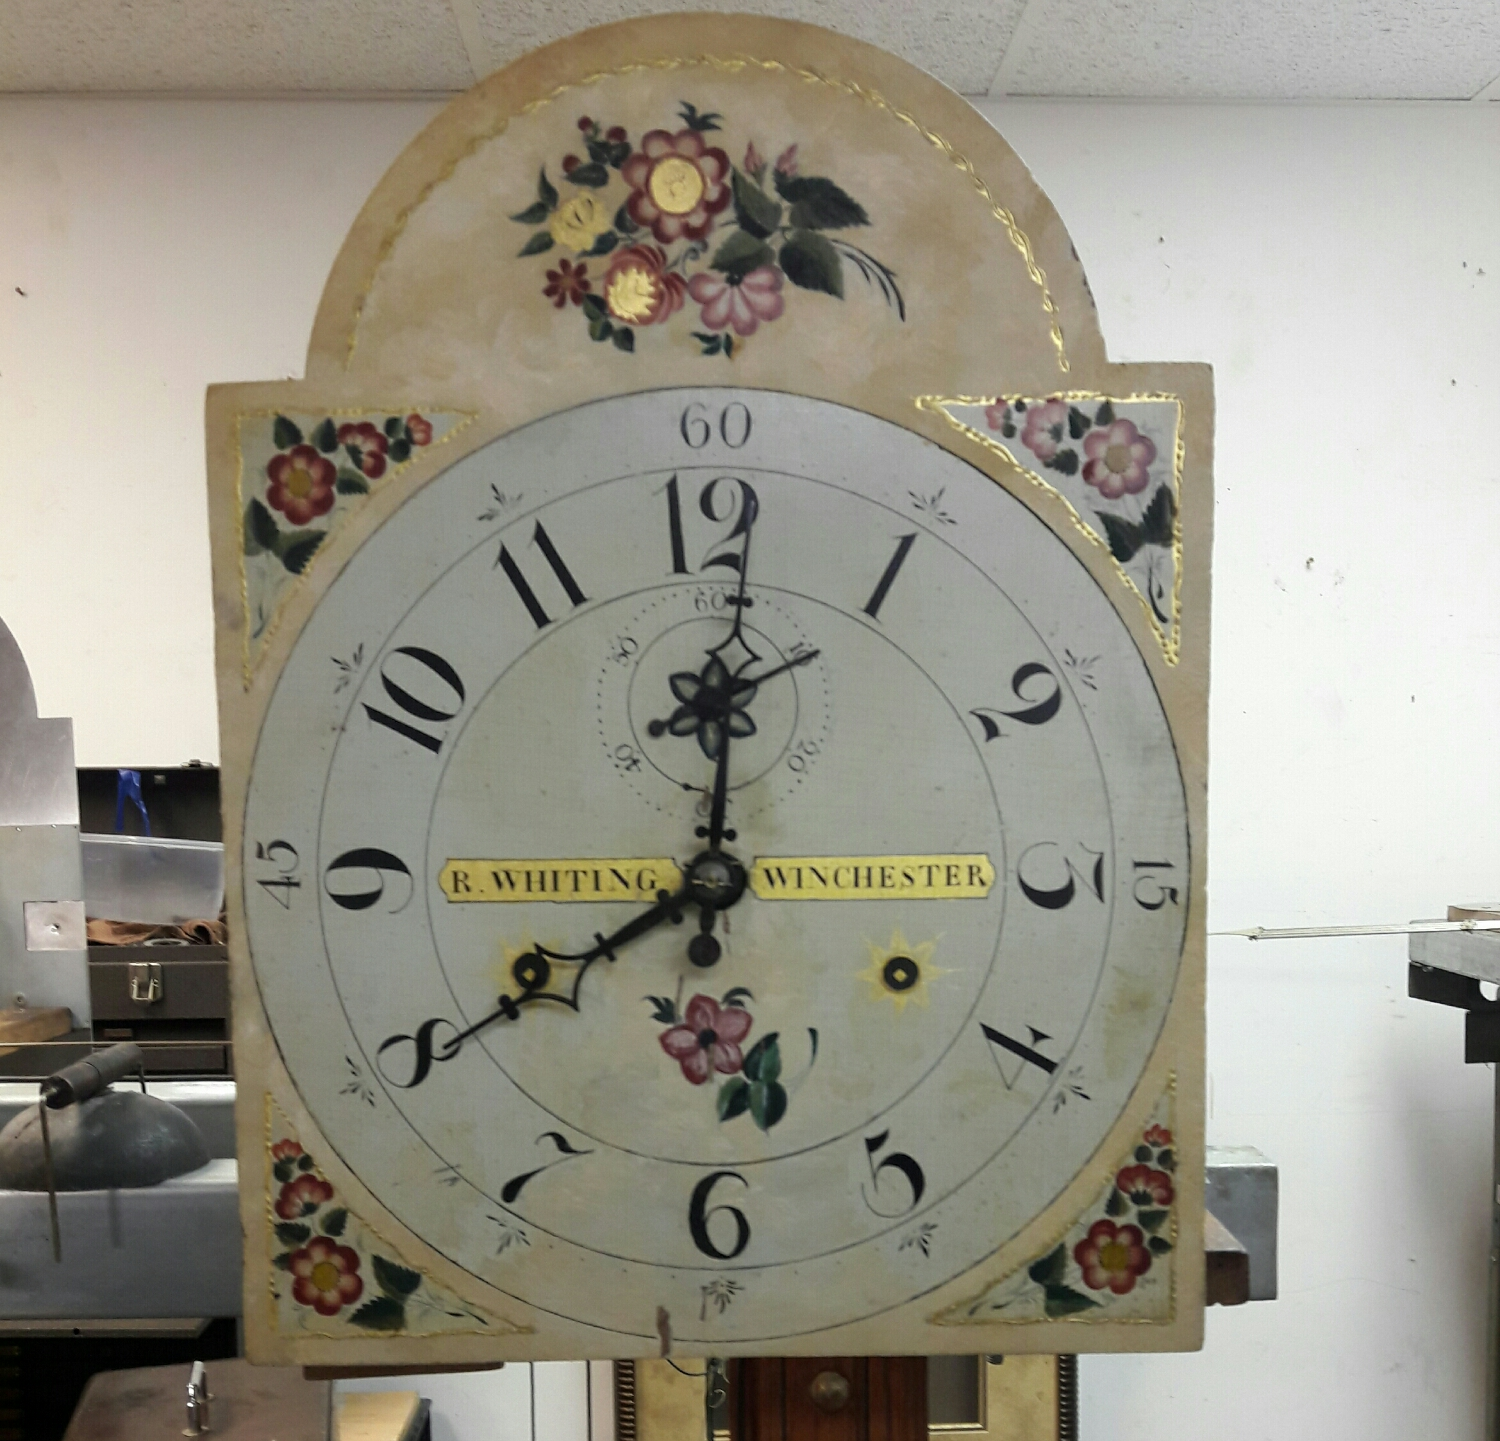 This clock runs like a charm . It's had a couple of hundred years of repairs done to it and keeps amazingly great time . It's driven by two small weights and a metal rod pendulum.